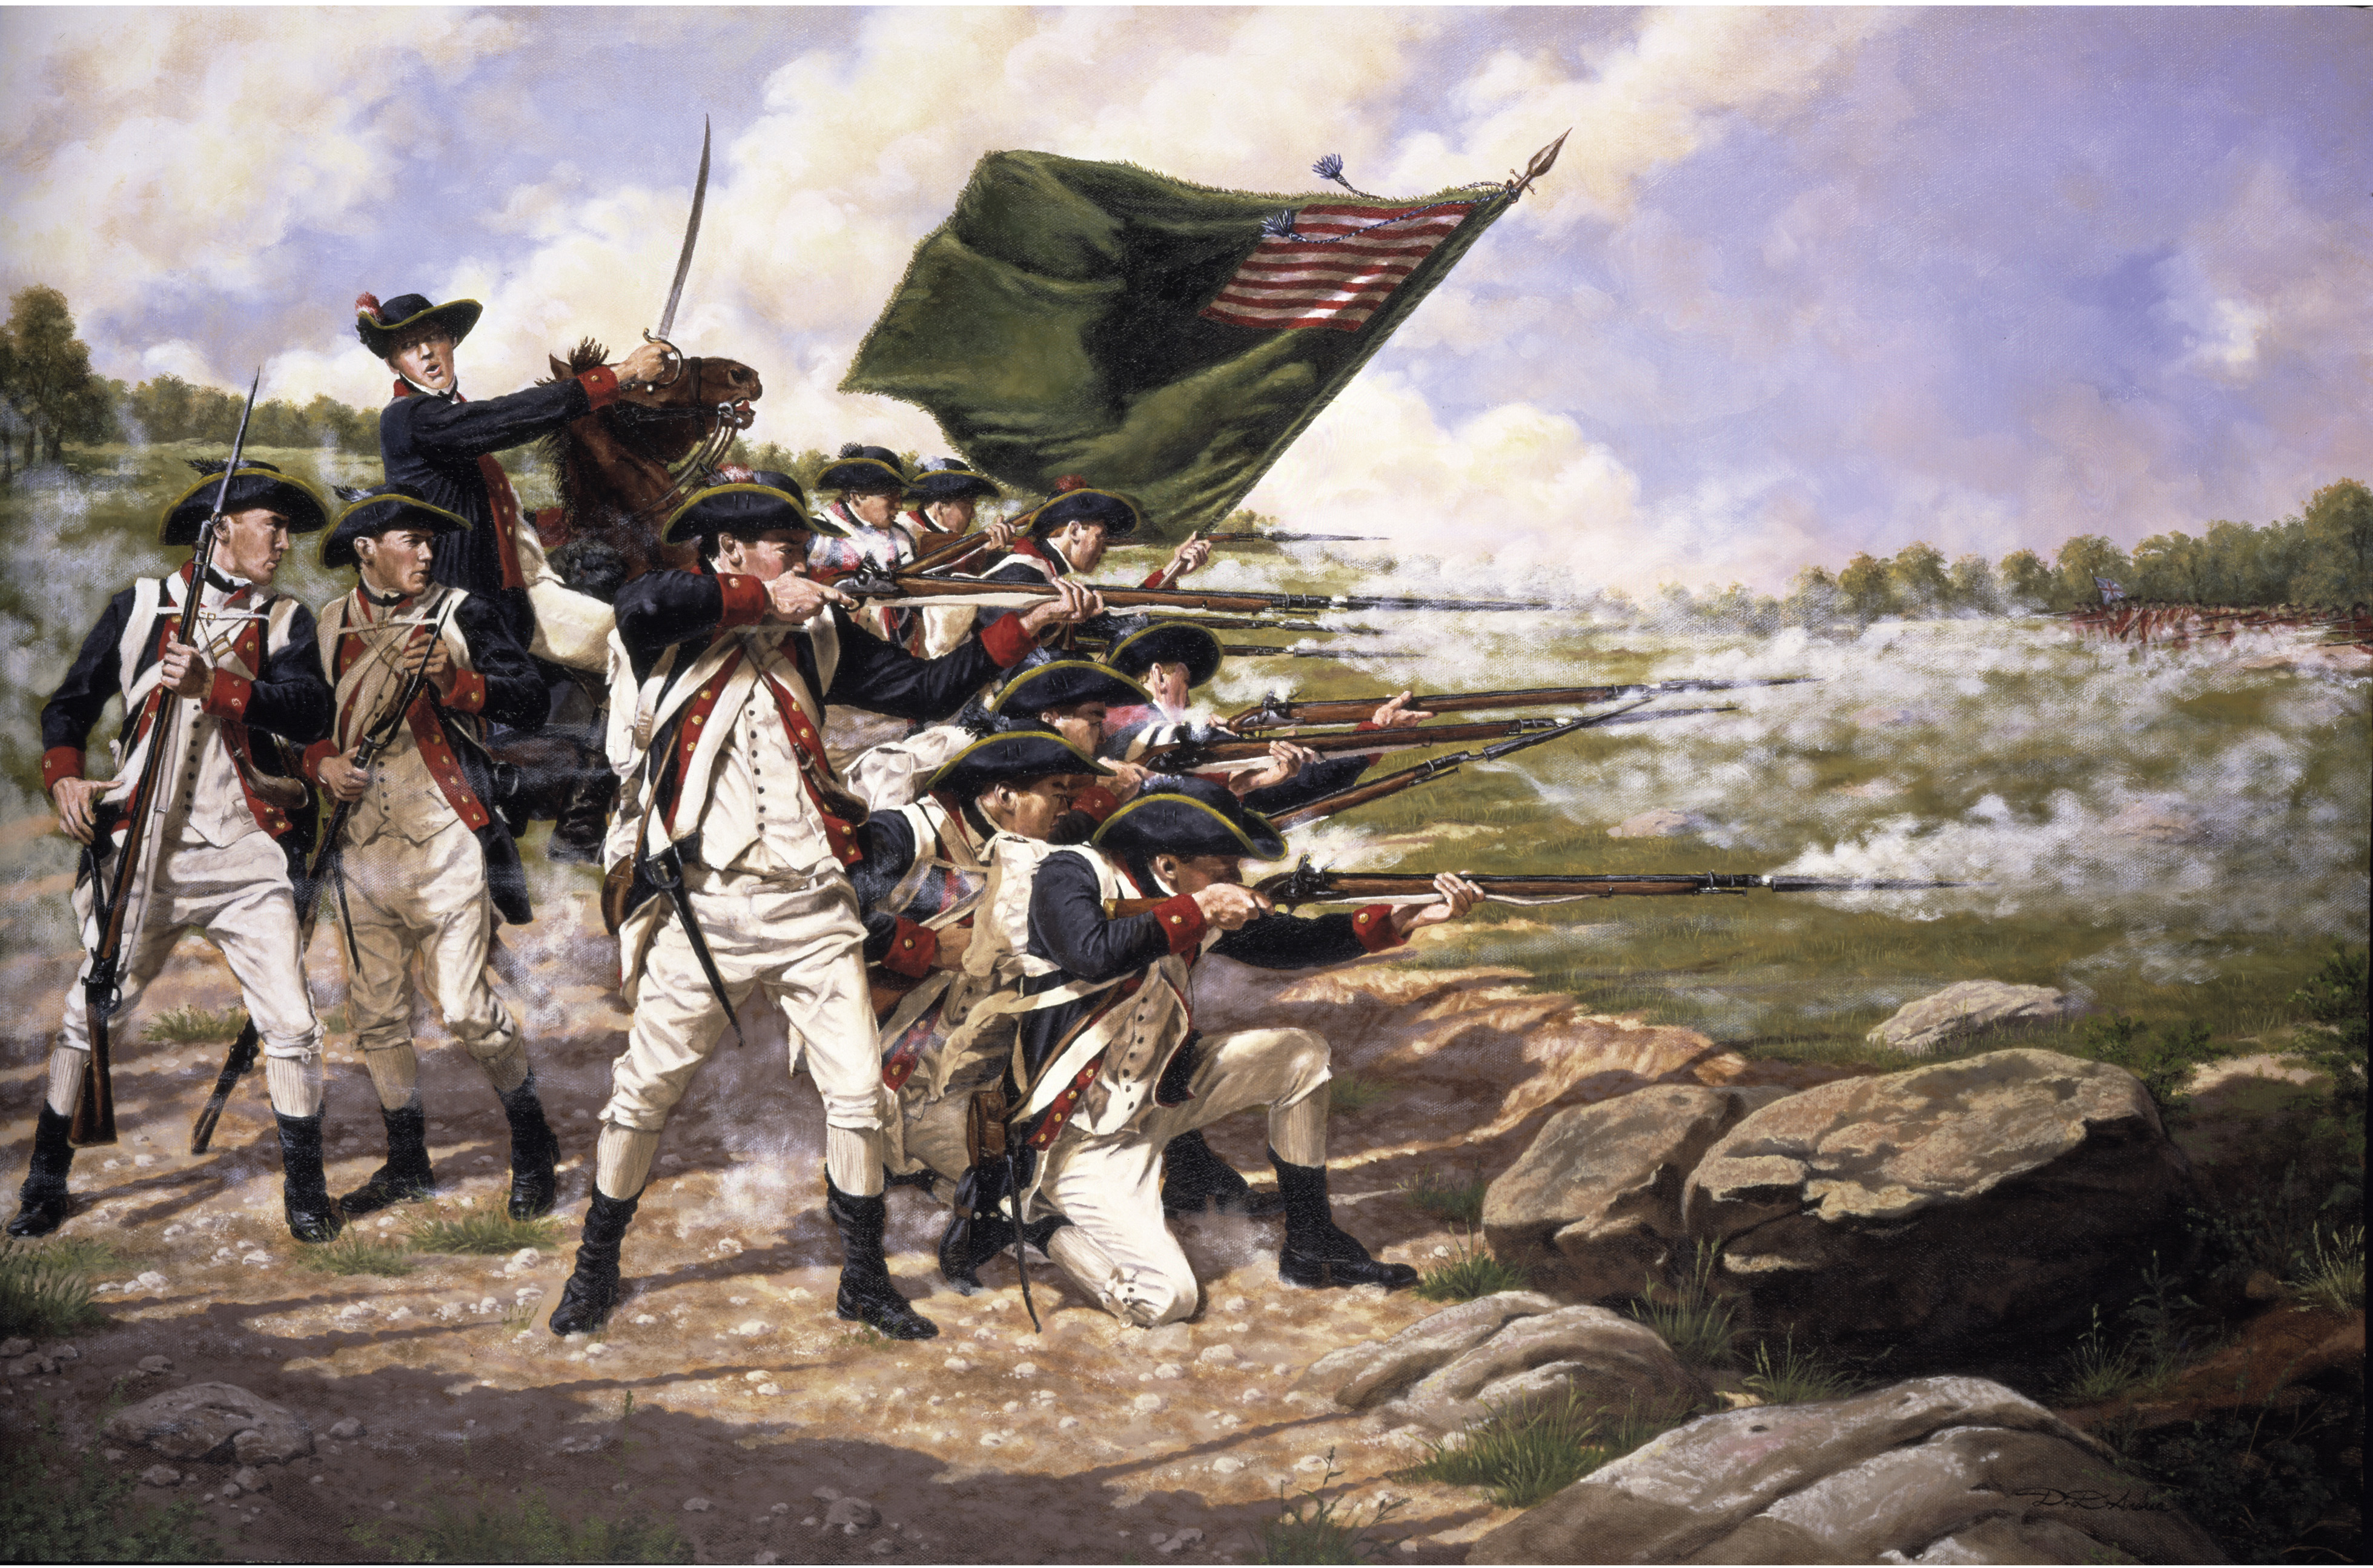 The Delaware Regiment at the Battle of Long Island on August 27, 1776.